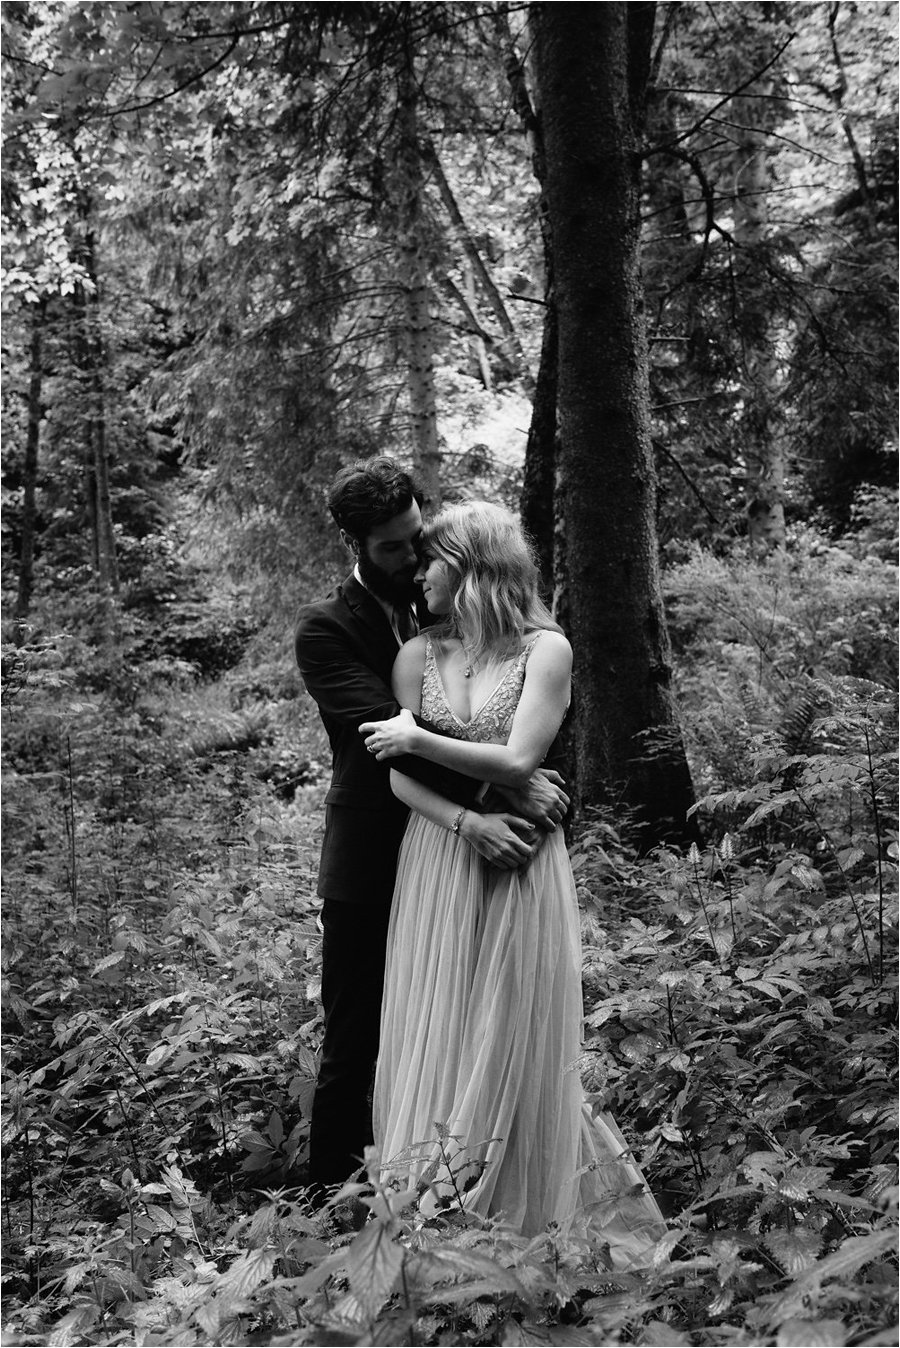 The groom embraces his bride in a forest - After wedding honeymoon shoot in Wengen by Caroline Hancox Photography